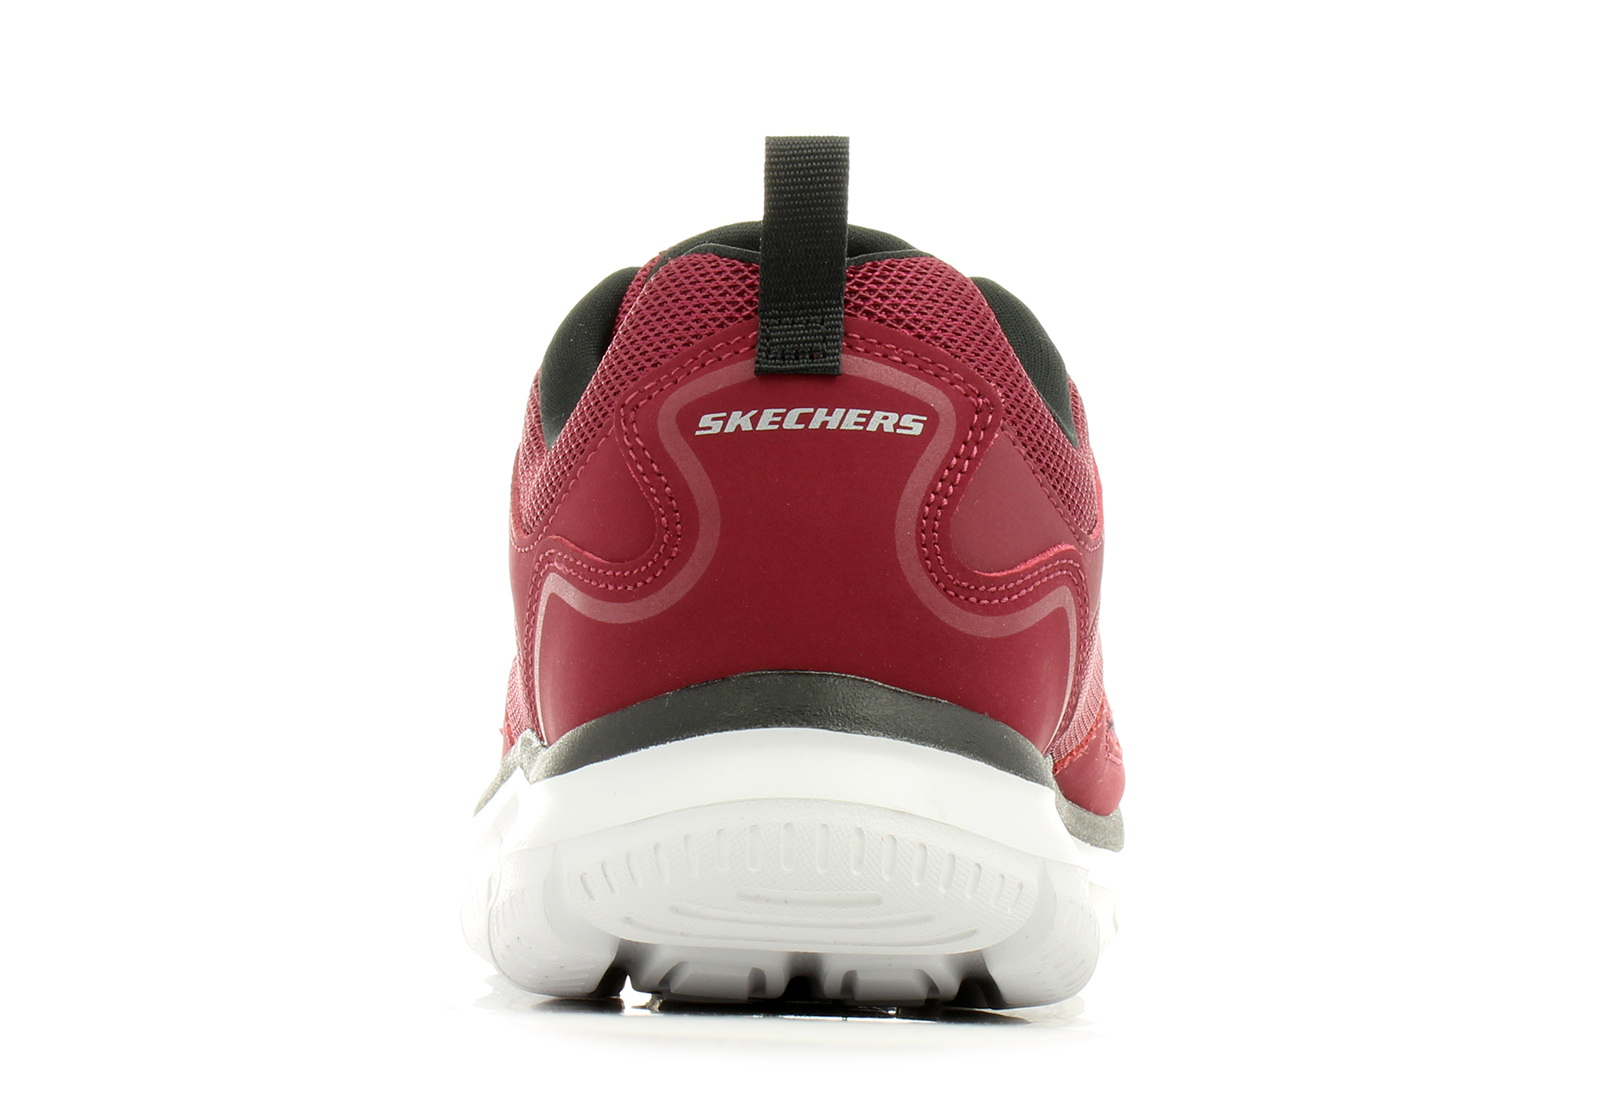 bd4aaa2e0abbf Skechers Shoes - Track - Scloric - 52631-bubk - Online shop for ...